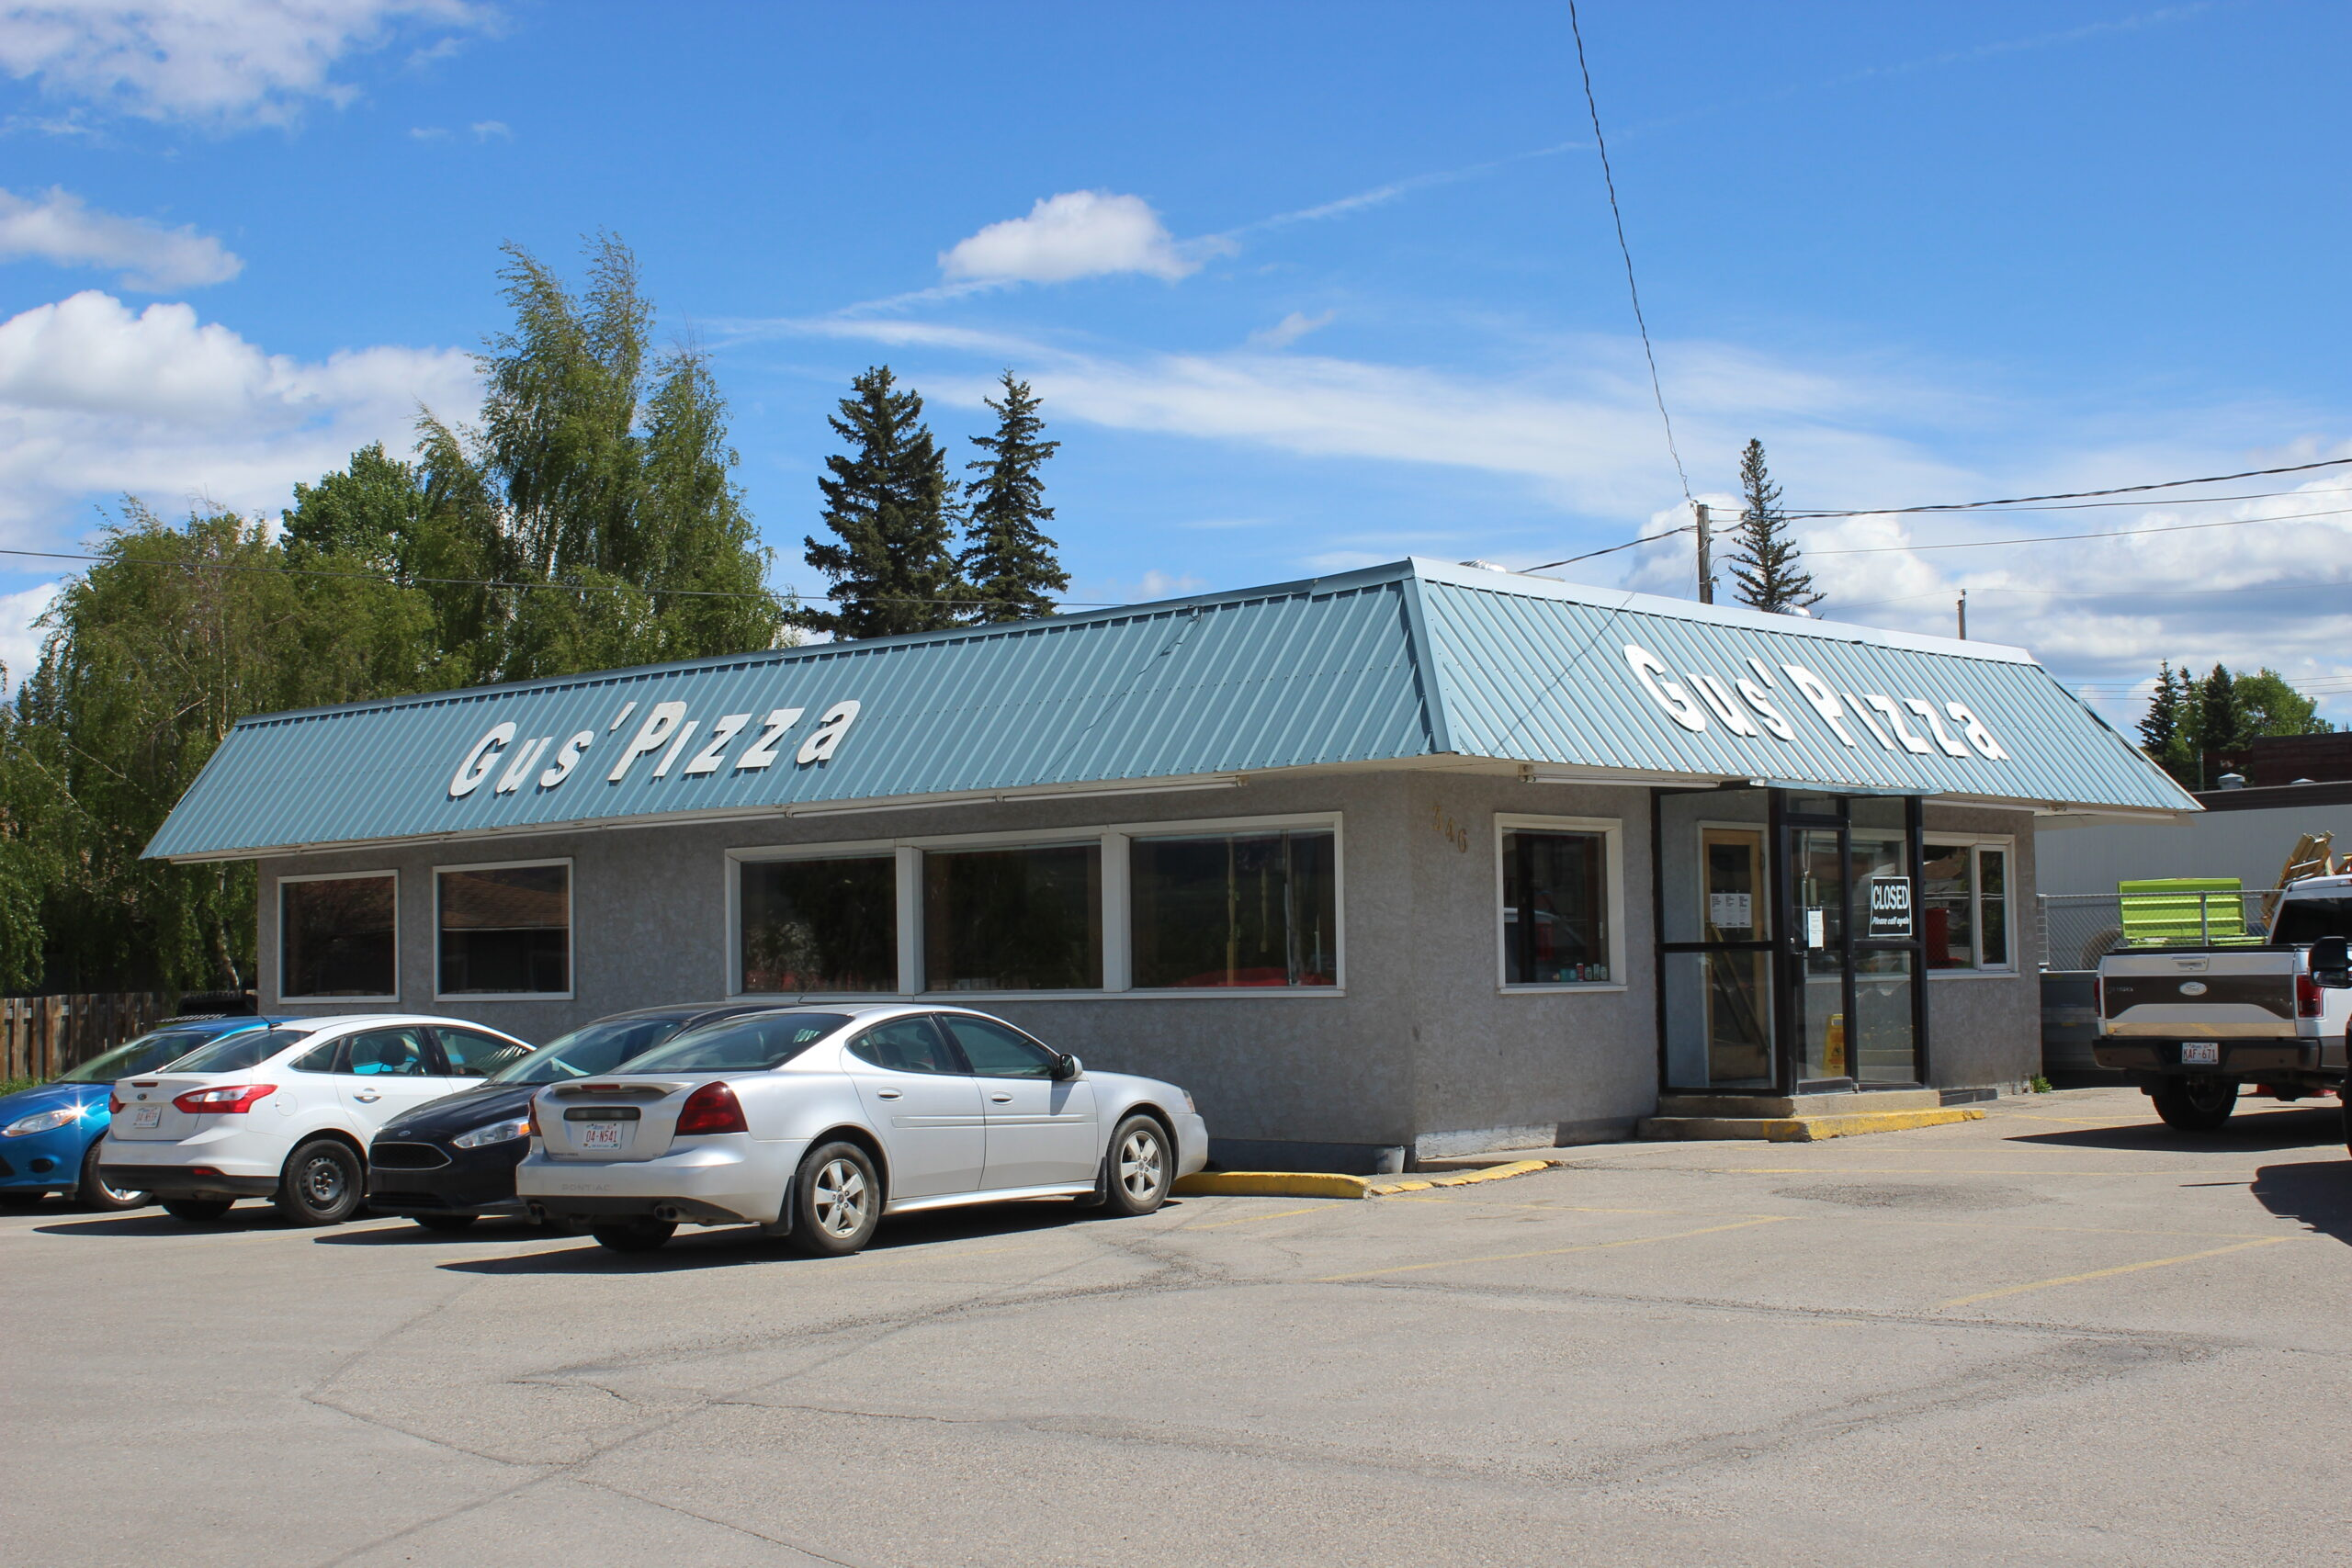 Gus' Pizza Hinton